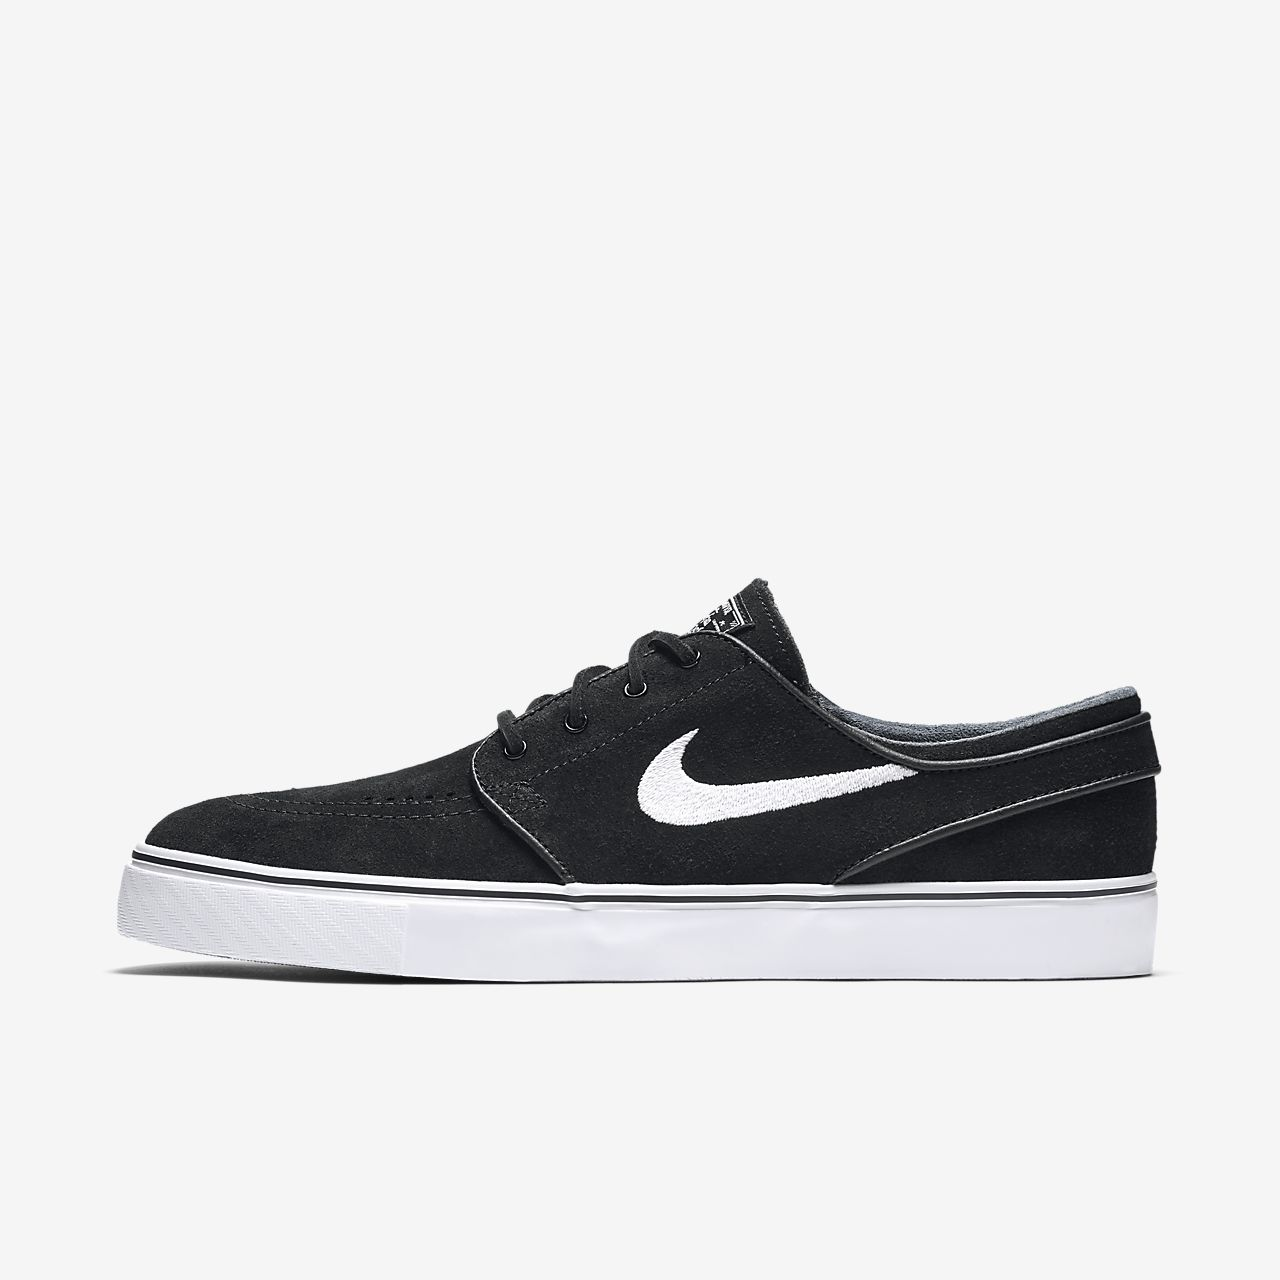 best nike shoes janoski shop in ncrc 832061